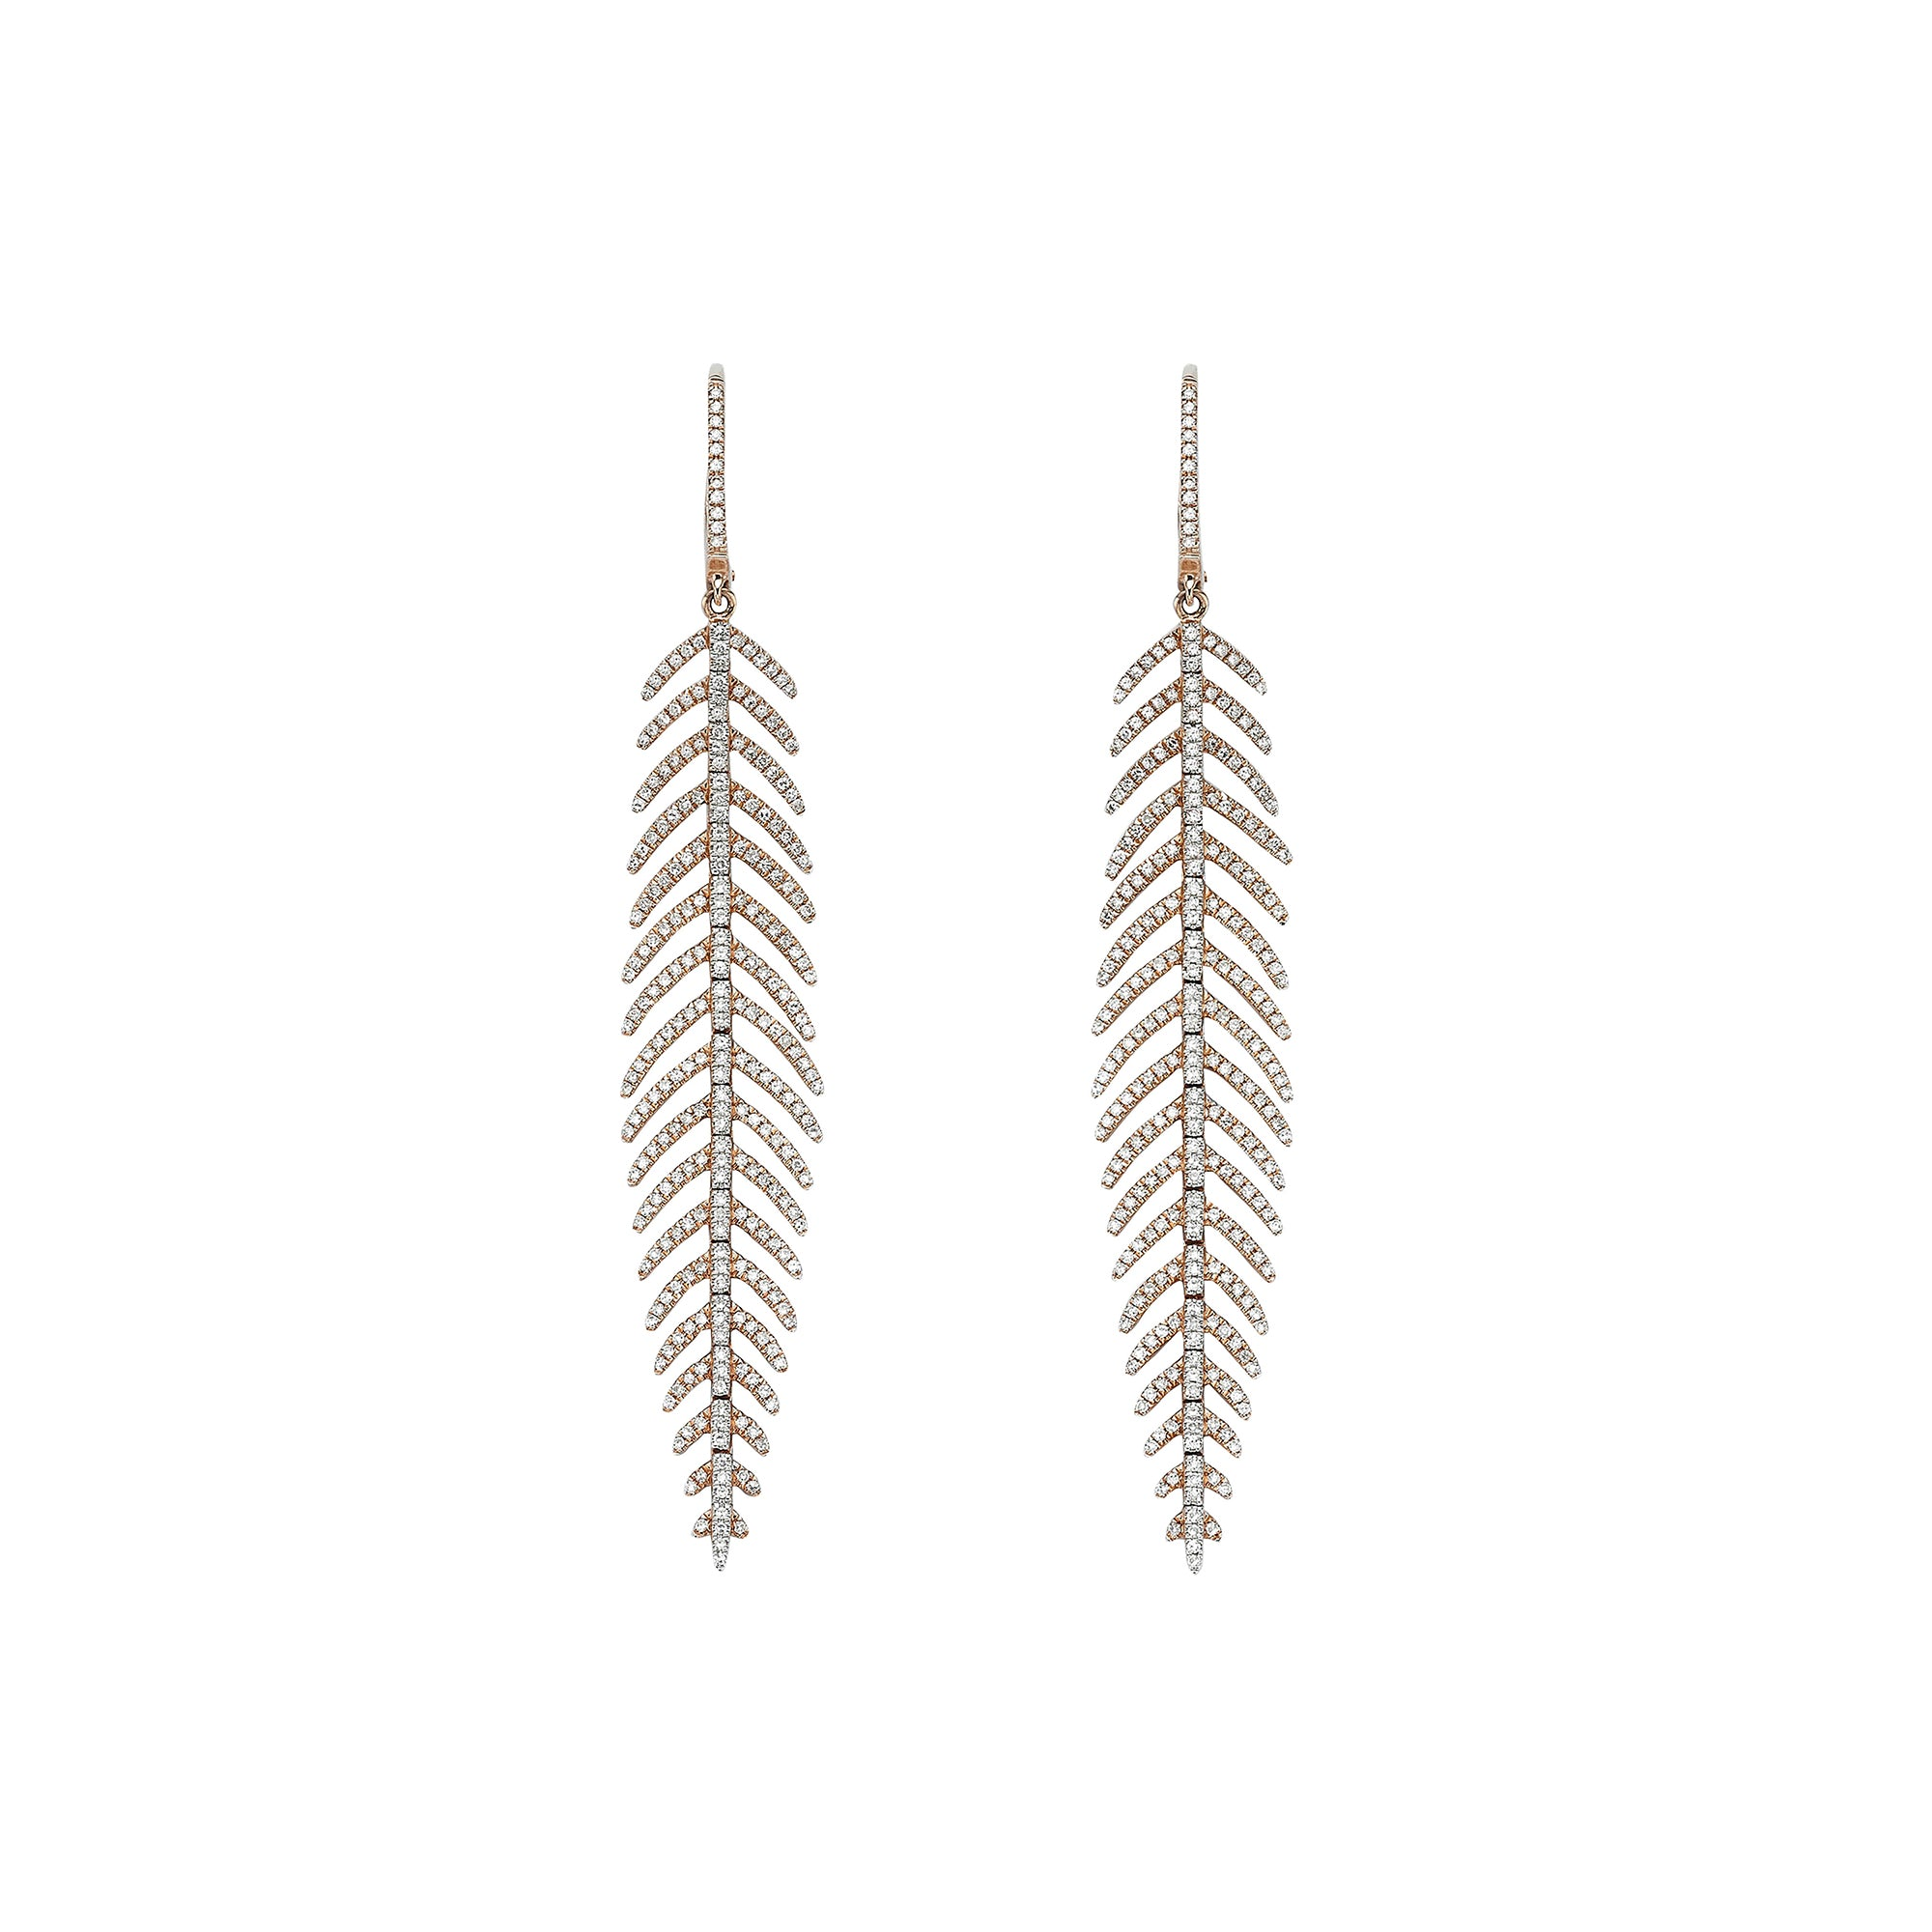 Fine Feather Medium Earrings - Ilene Joy - Earrings | Broken English Jewelry